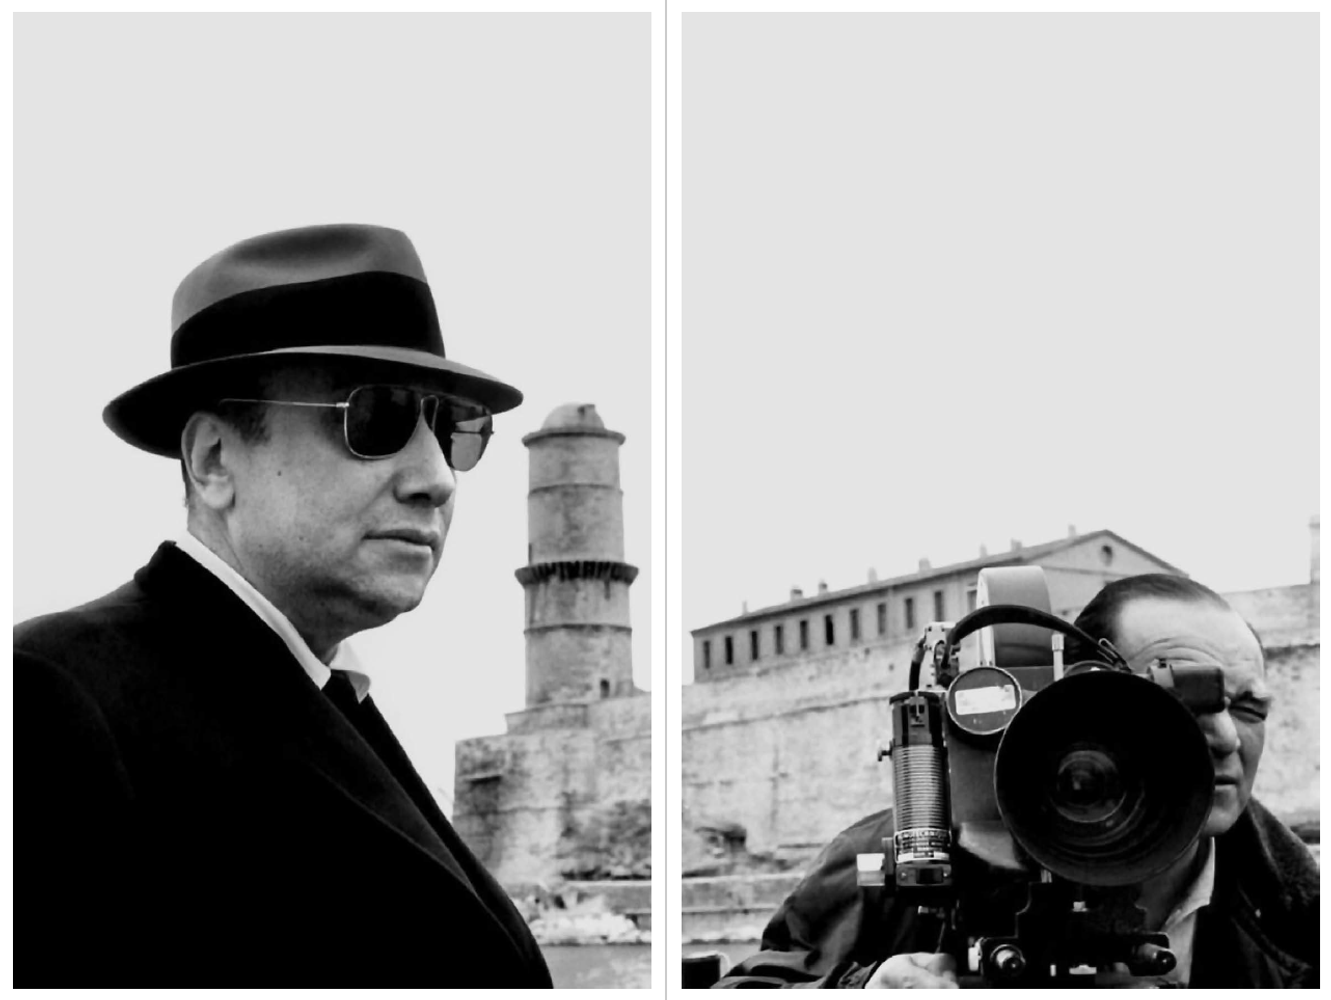 Honor Among Thieves: The Cinema of Jean-Pierre Melville